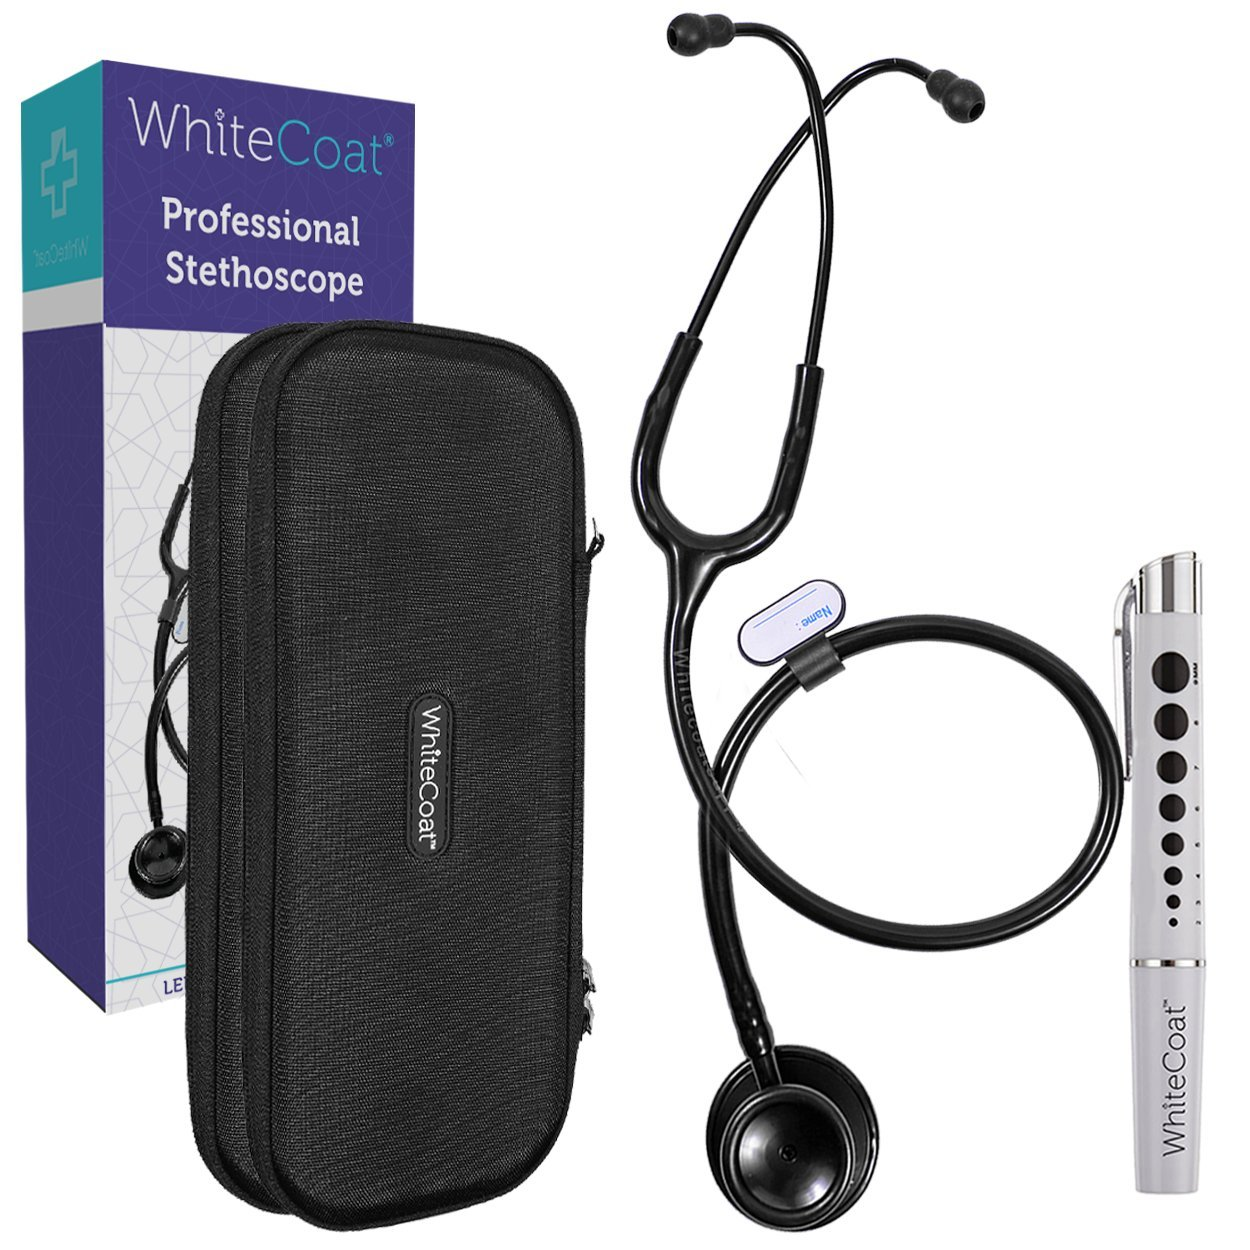 White Coat Dual Head Stethoscope - Lightweight and Acoustical with Protective Case, Jet Black Plus LED Pen Light Pupil Gauge